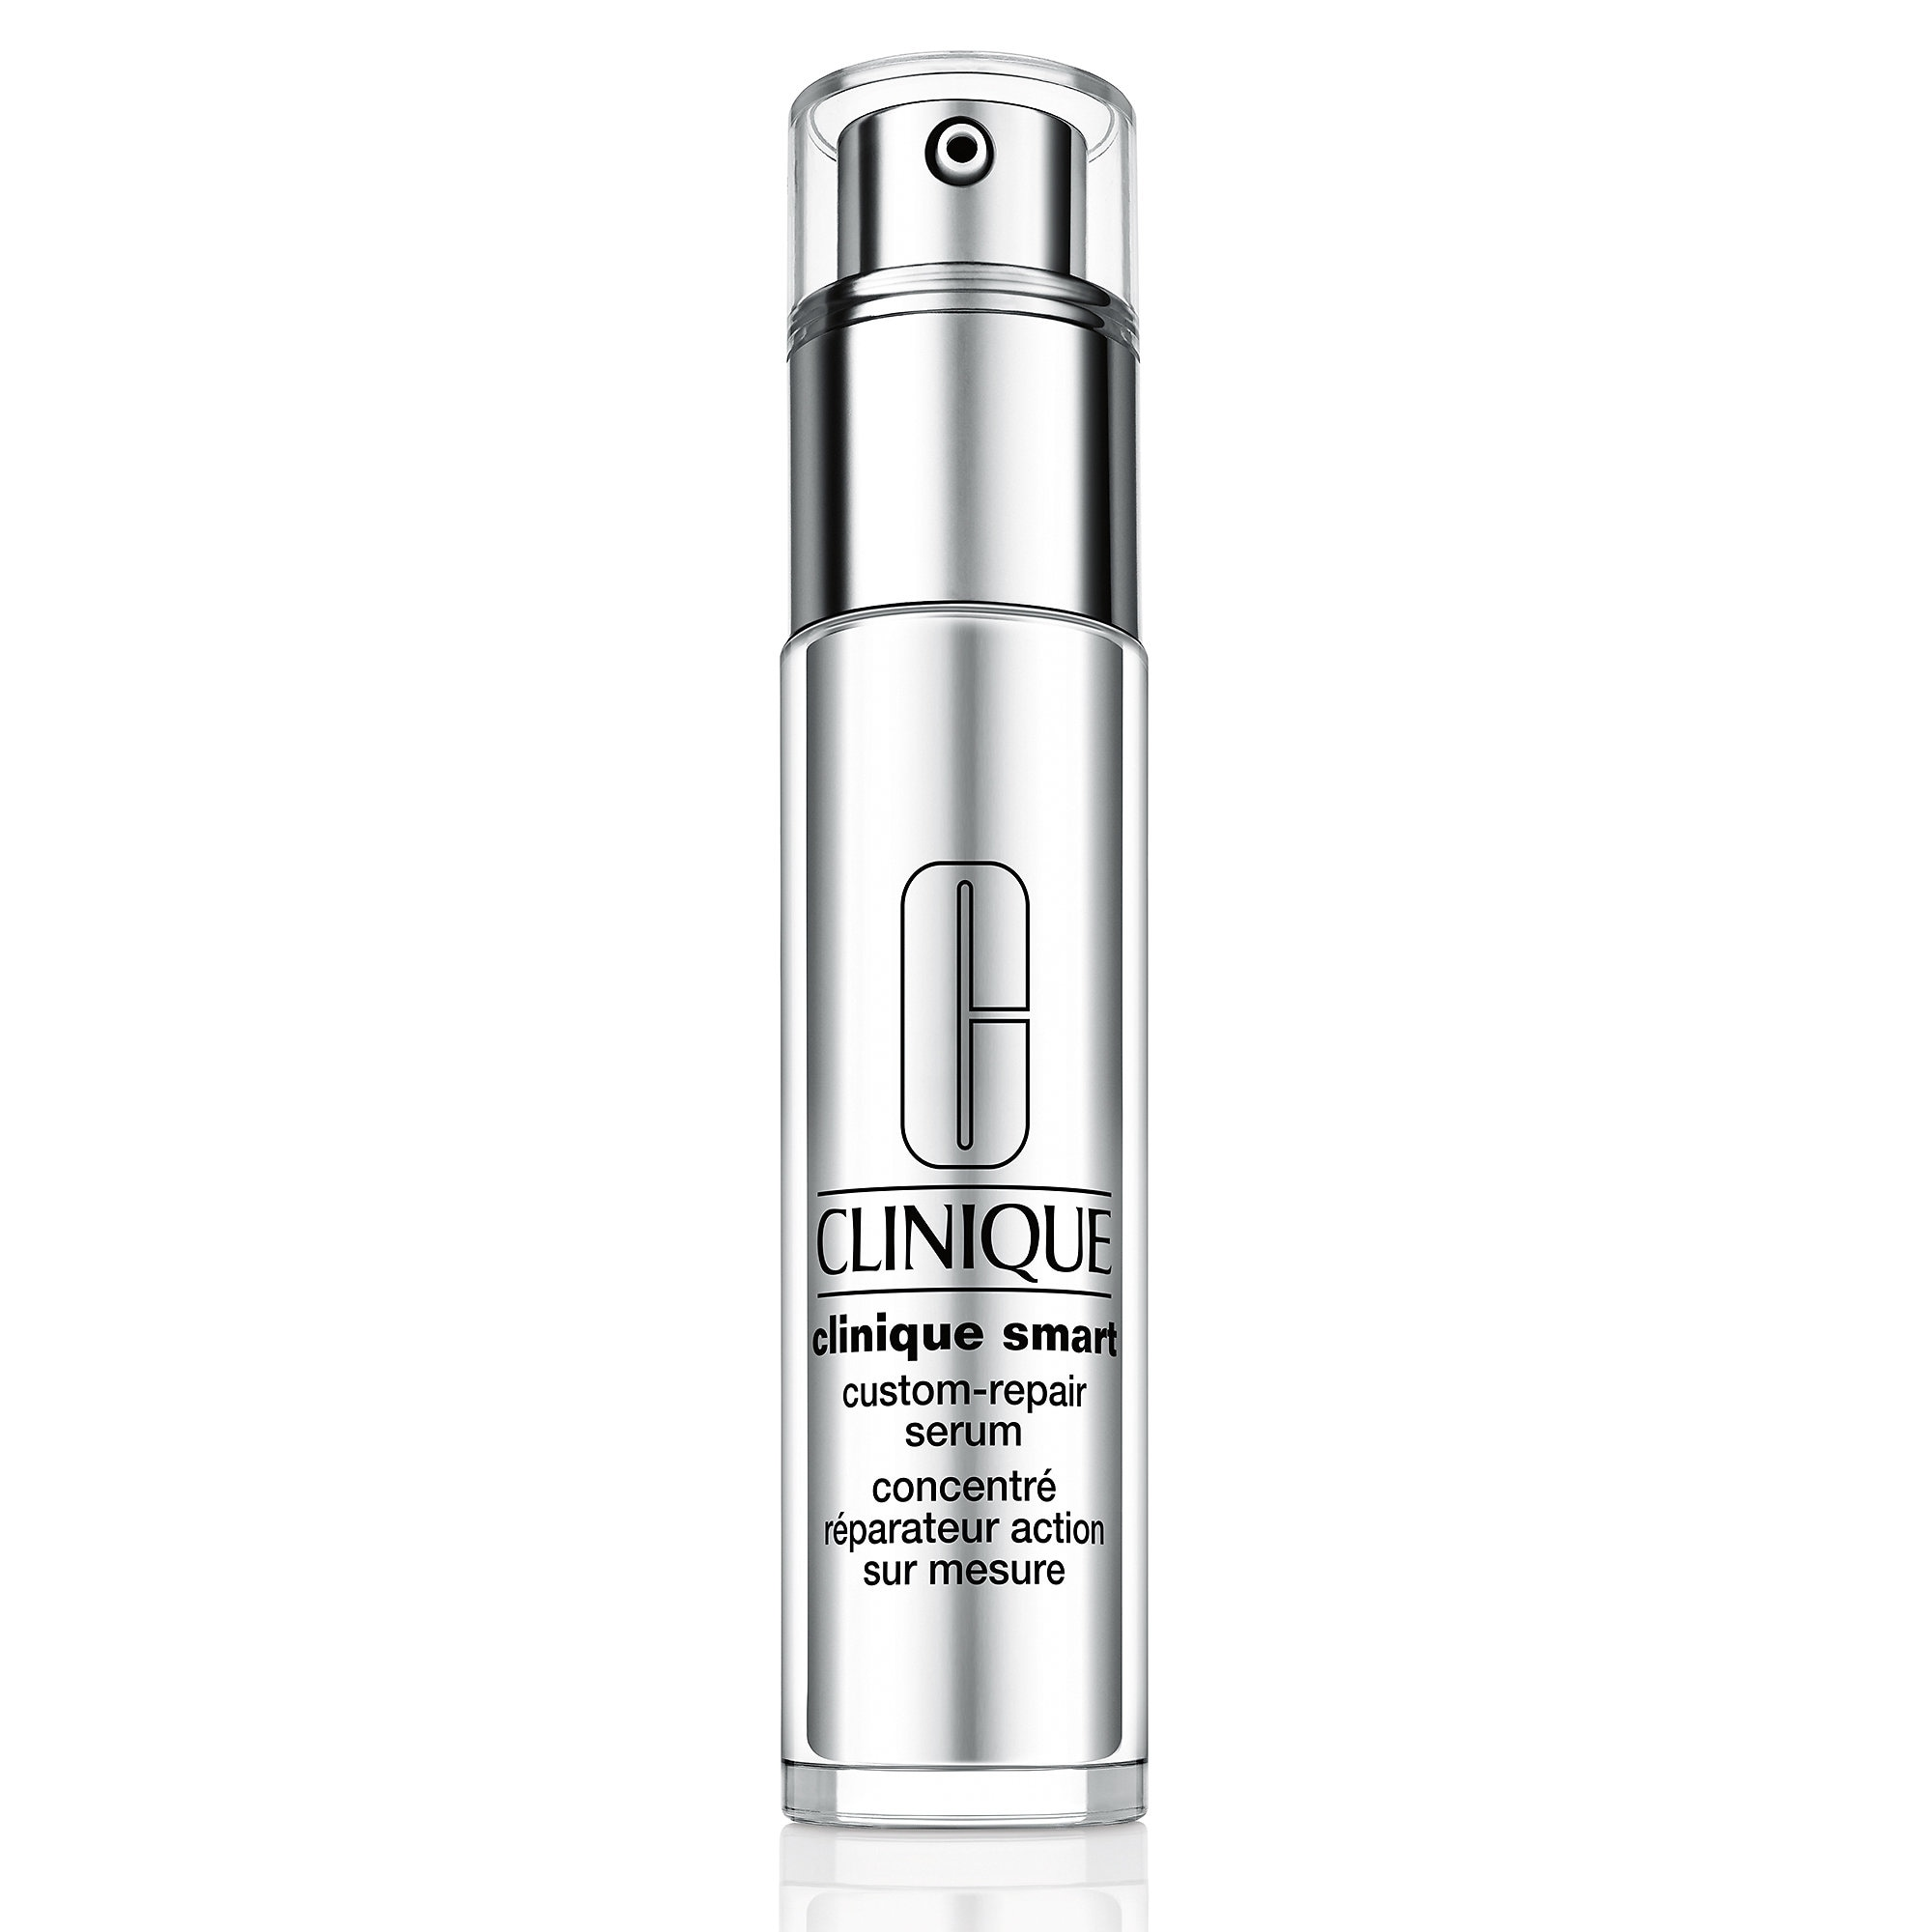 related product products/images/Clinique-SmartCustomRepairSerum